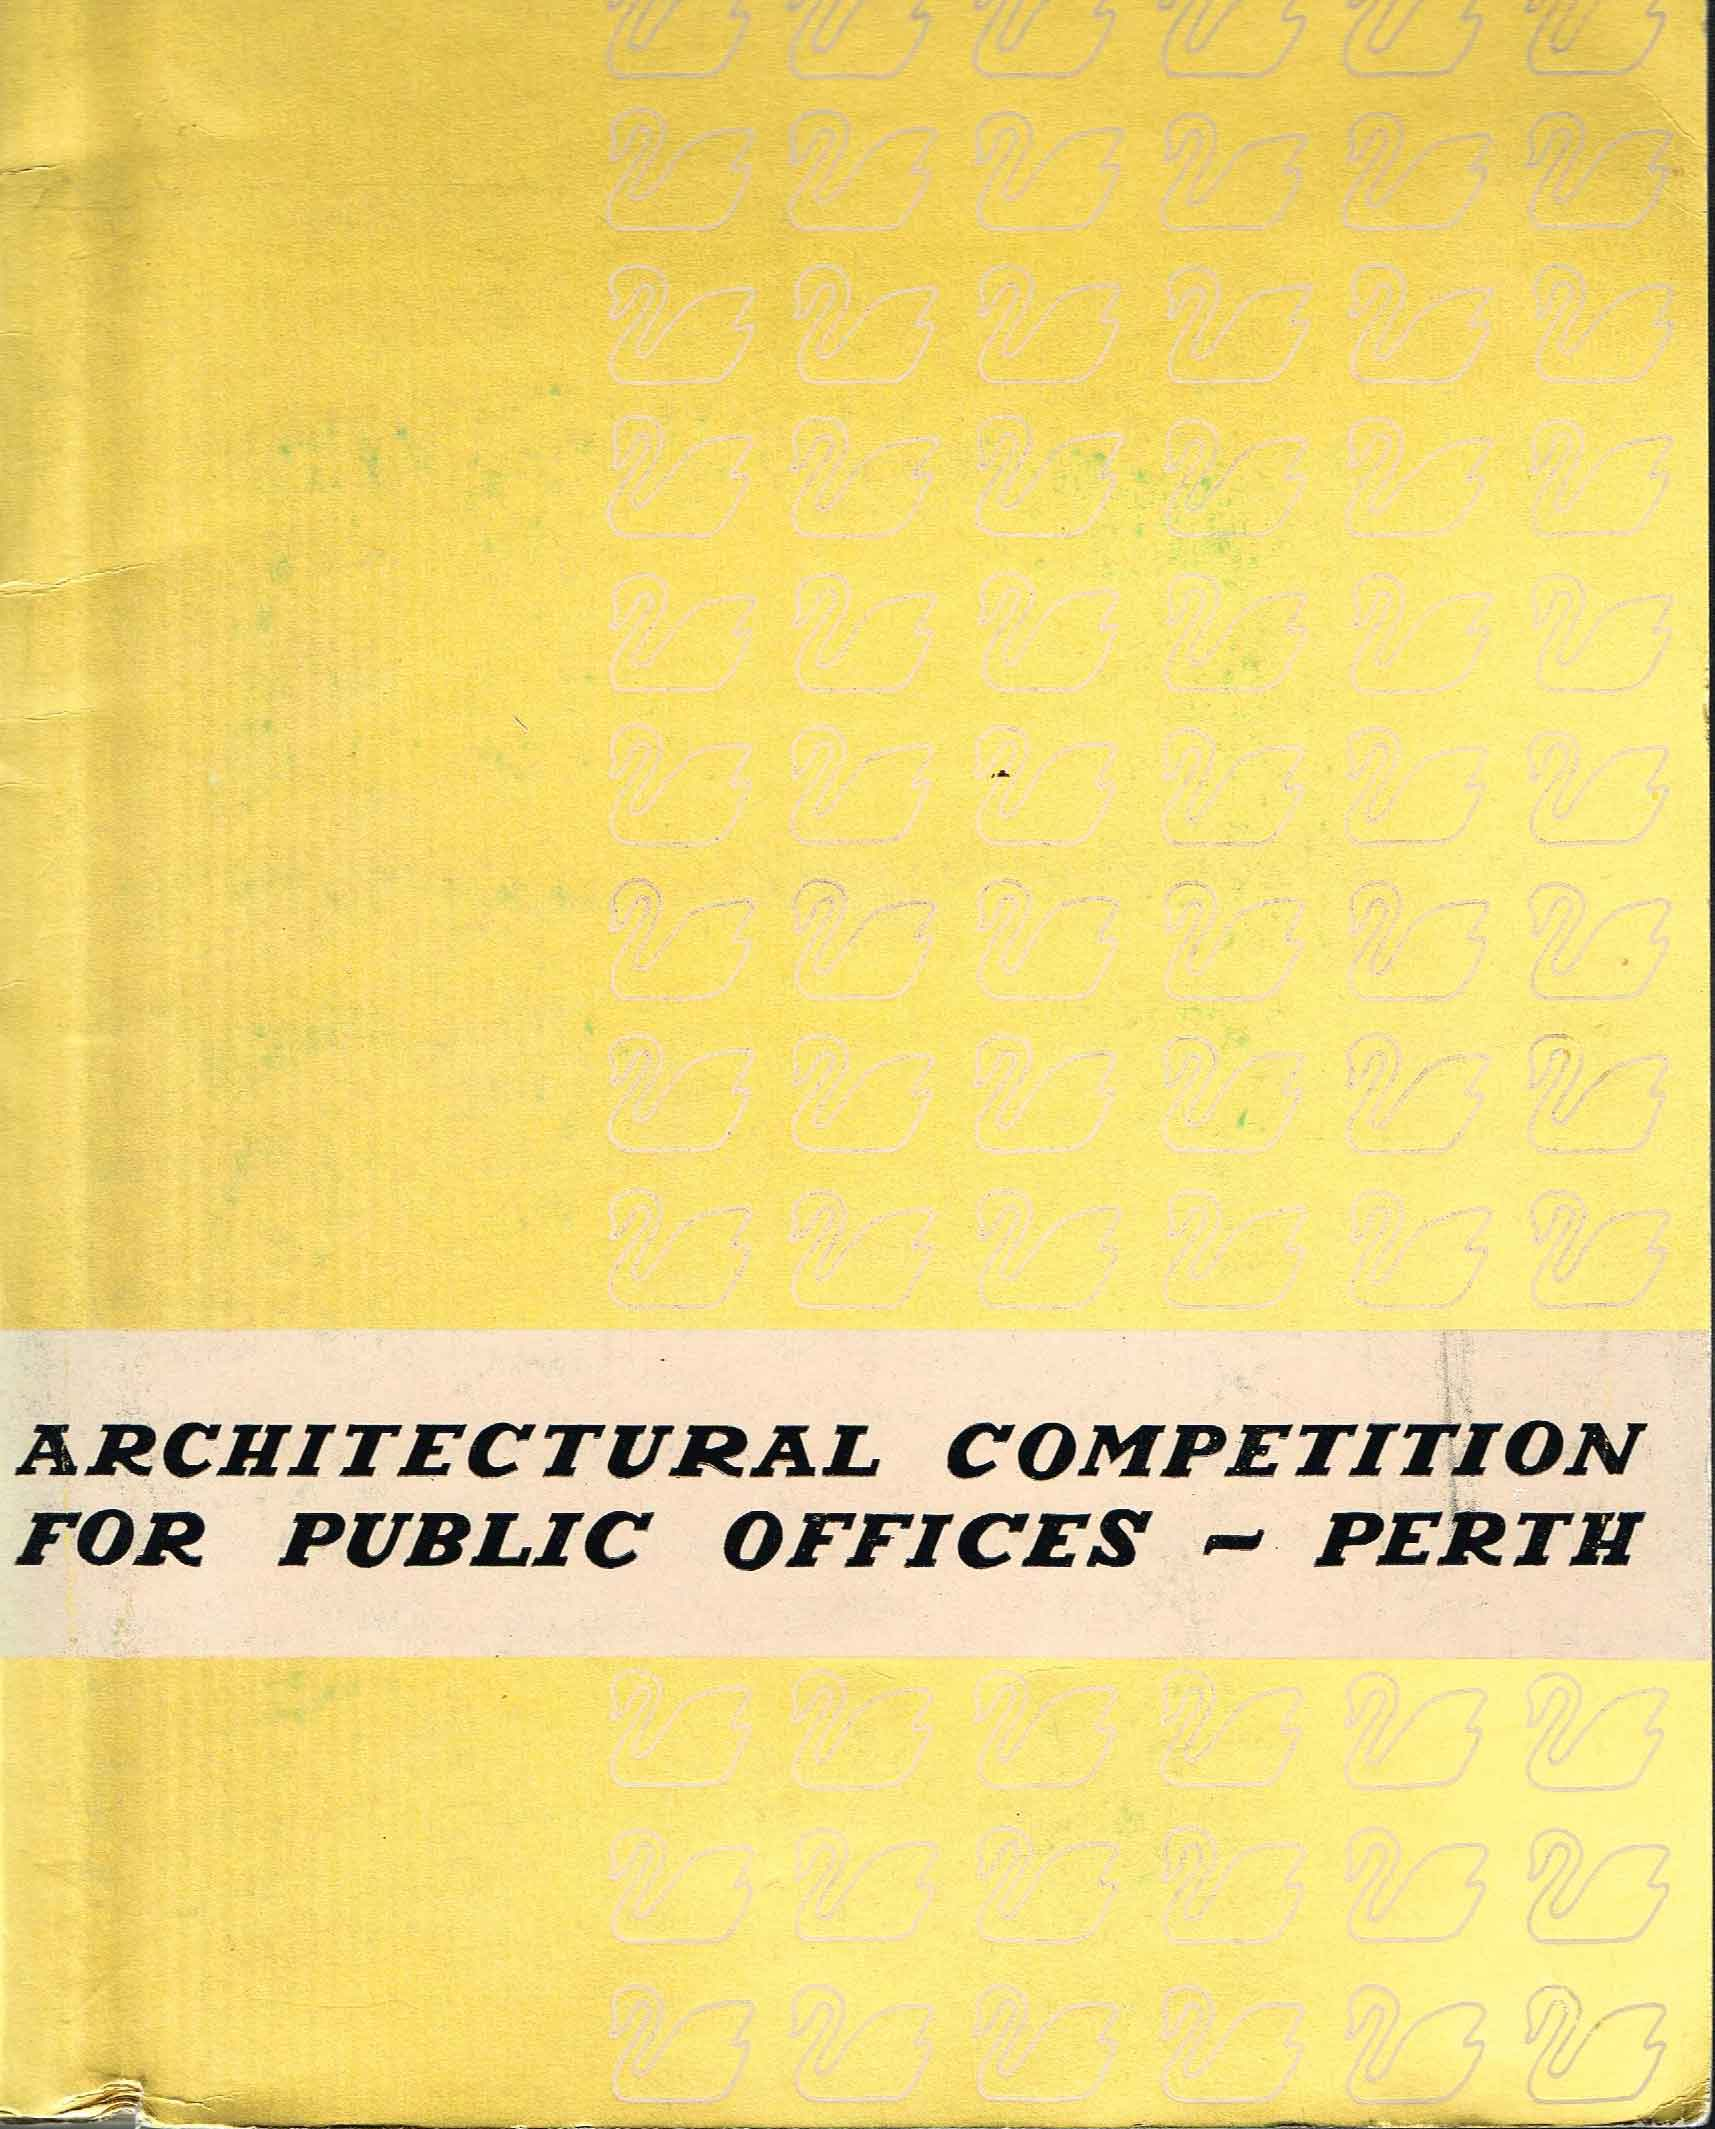 Architectural-Competition-For-Public-Offices